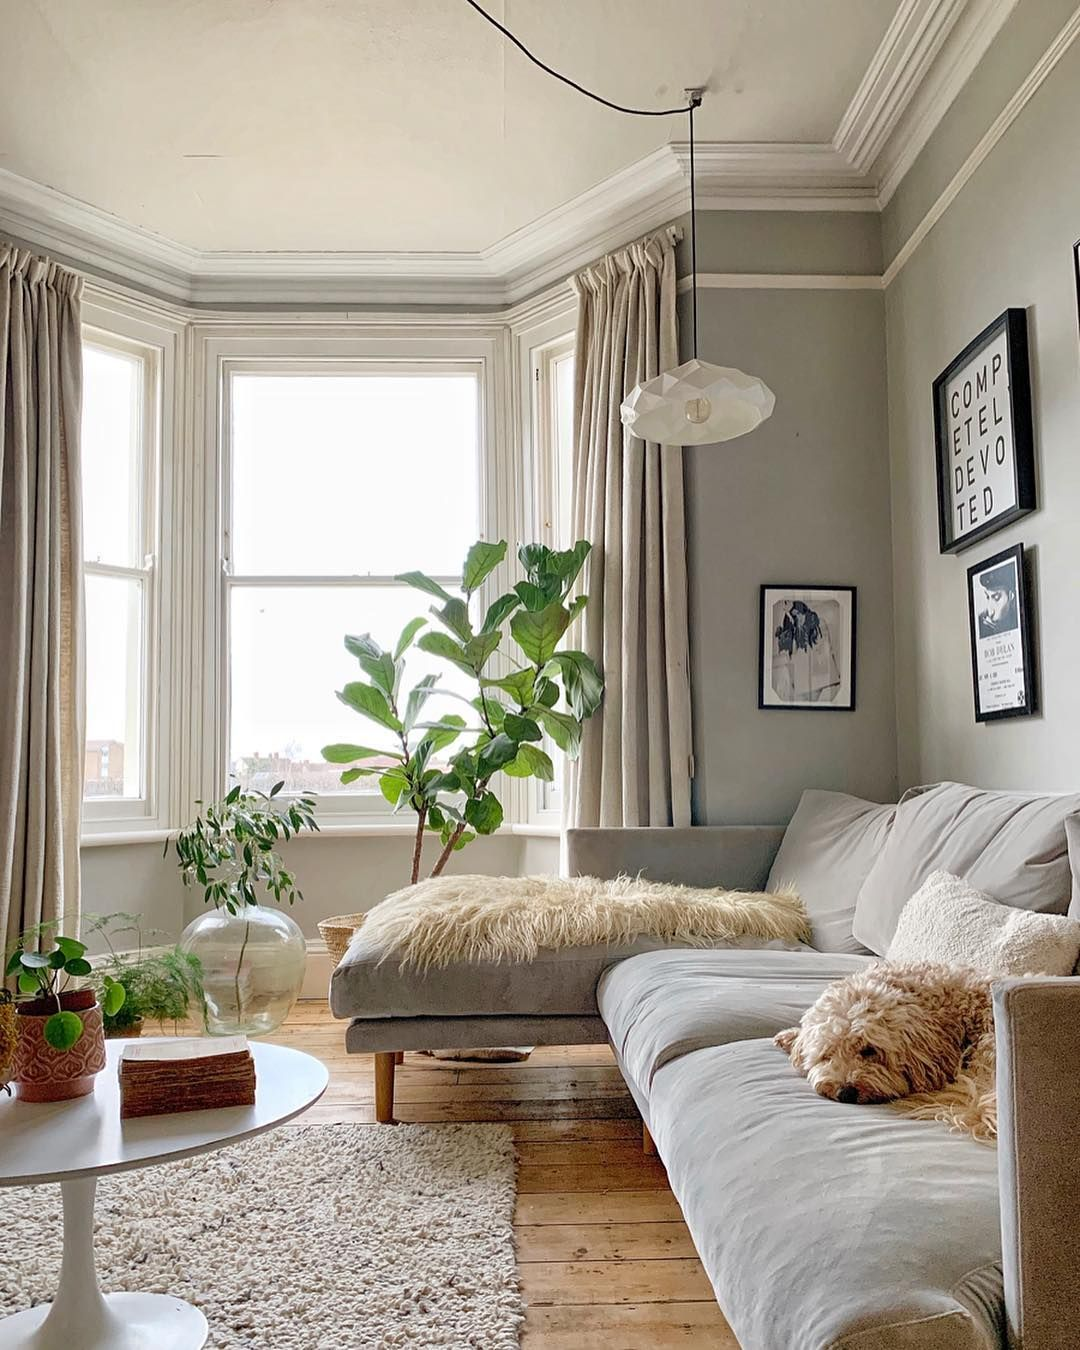 22 Tips For Couples Moving In Together Extra Space Storage Cosy Living Room Victorian Living Room House Interior Extra space in living room